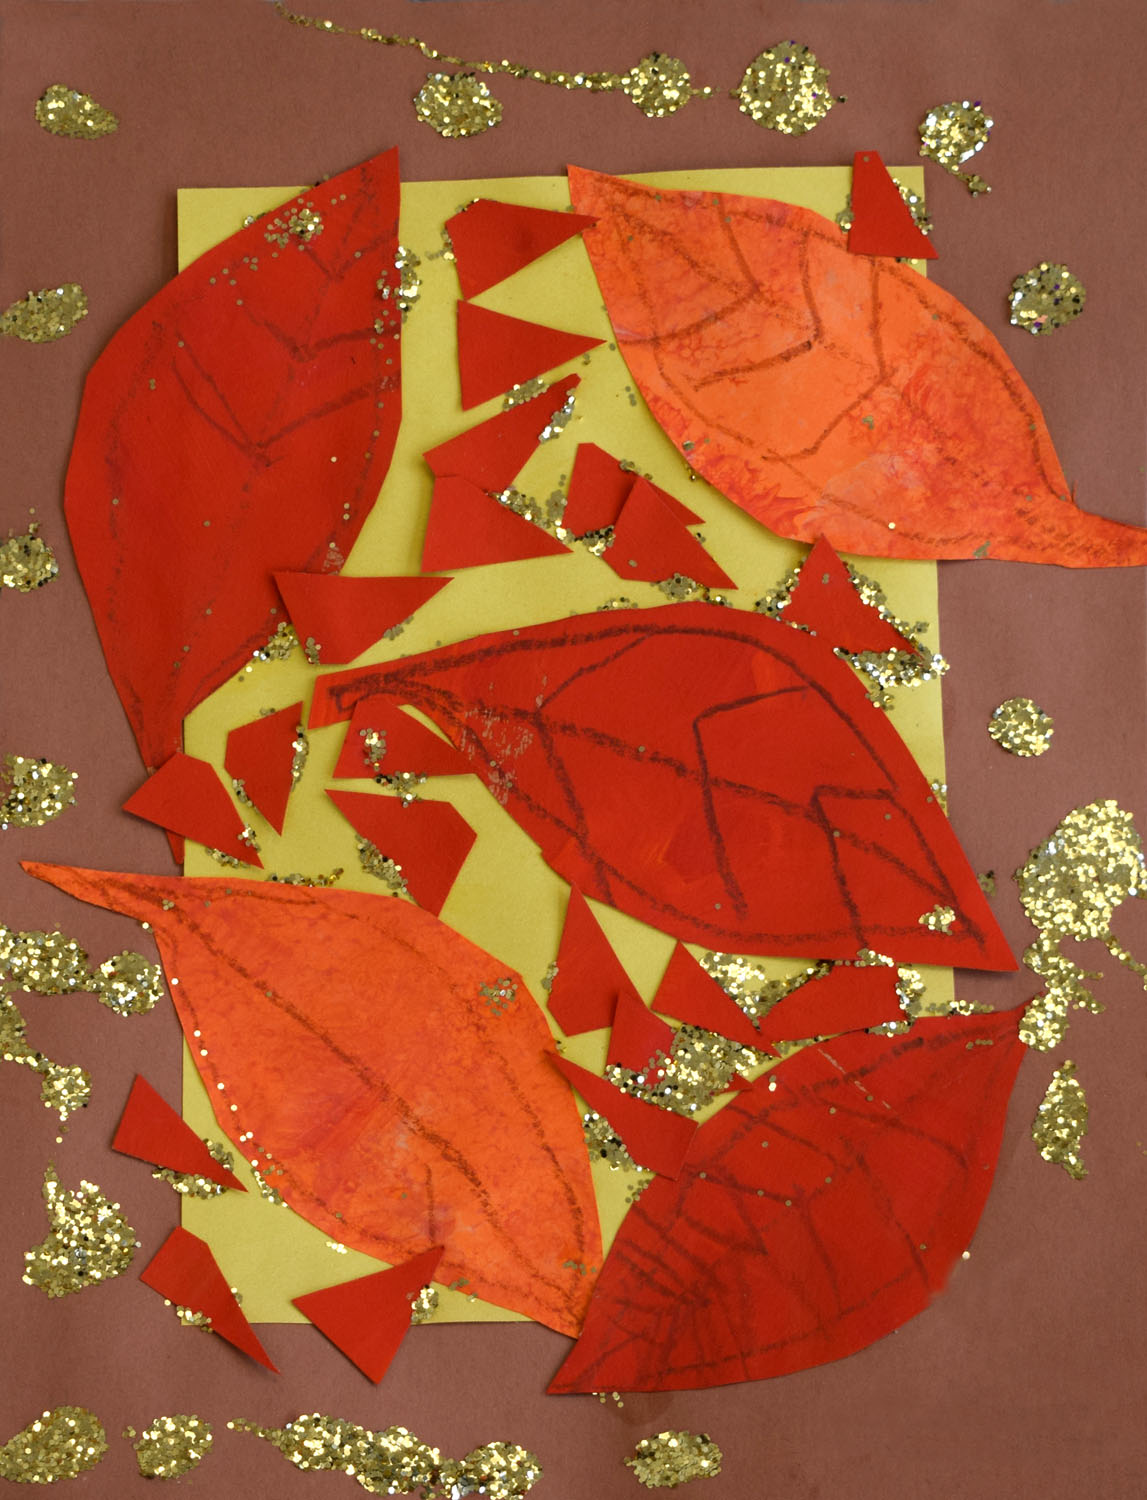 Paper montage of leaves glued to a yellow and brown background and accented with pencil-drawn veins